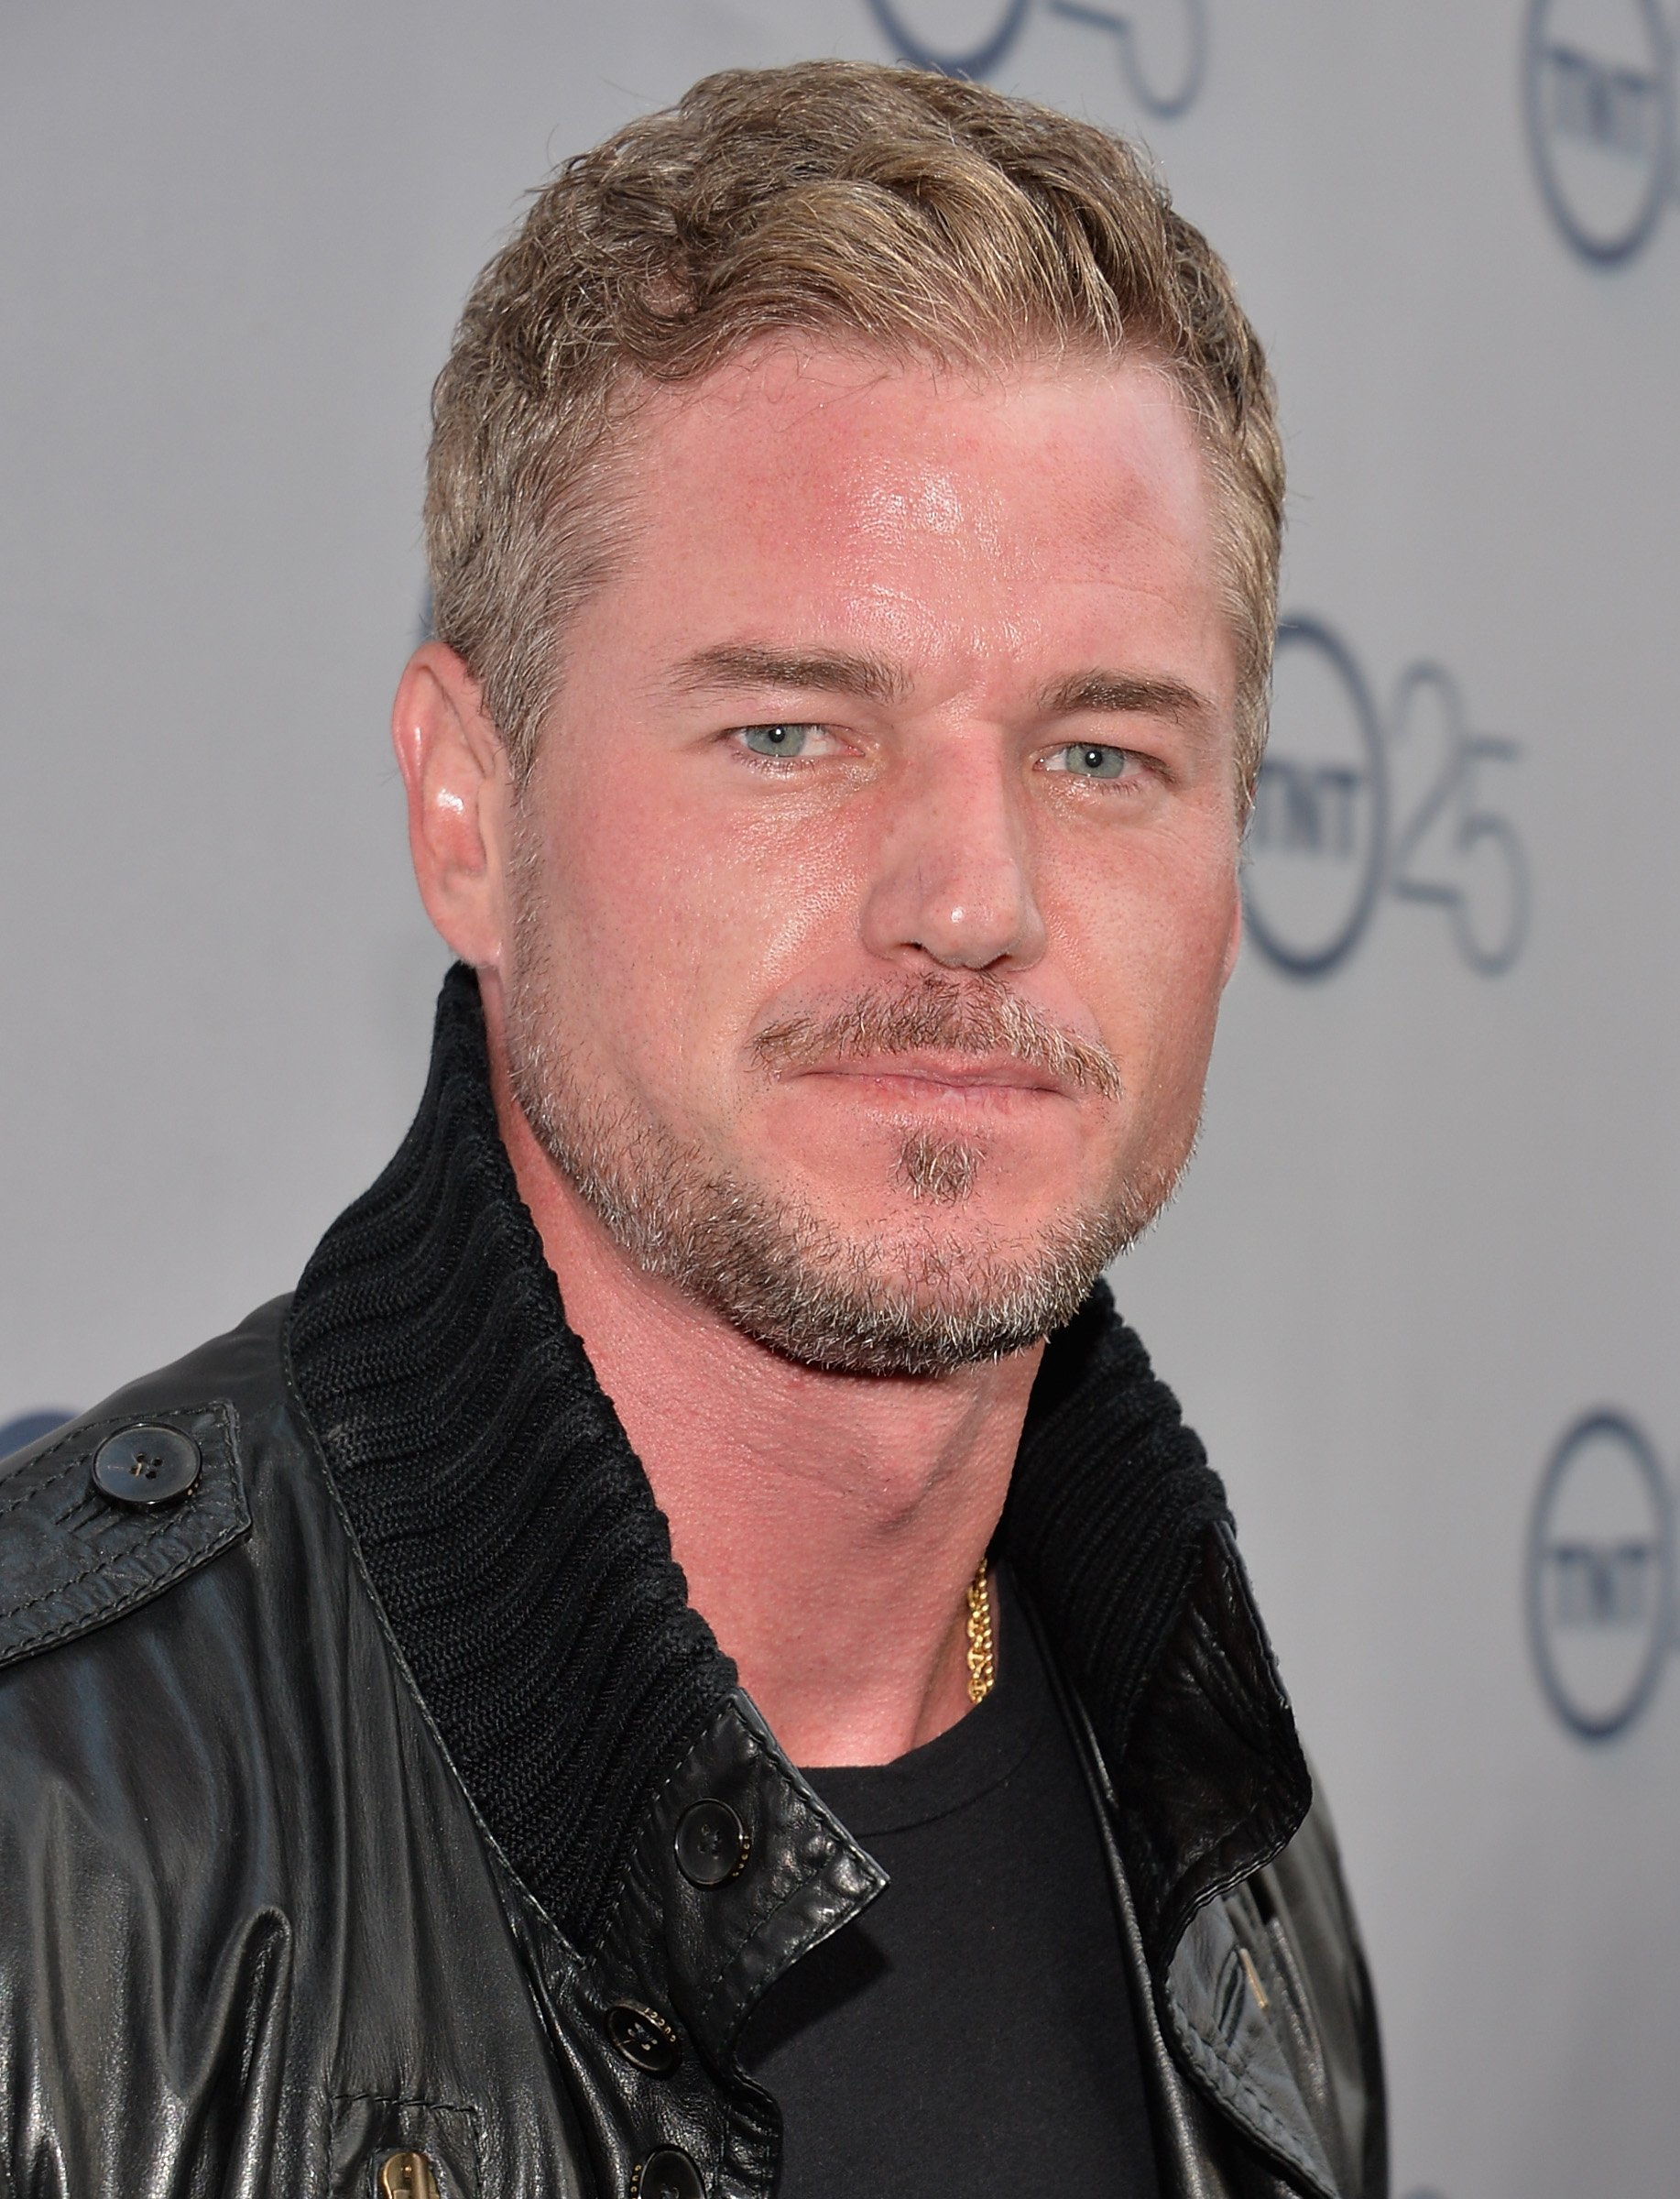 Eric Dane arrives to TNT's 25th Anniversary Party at The Beverly Hilton Hotel on July 24, 2013 in Beverly Hills